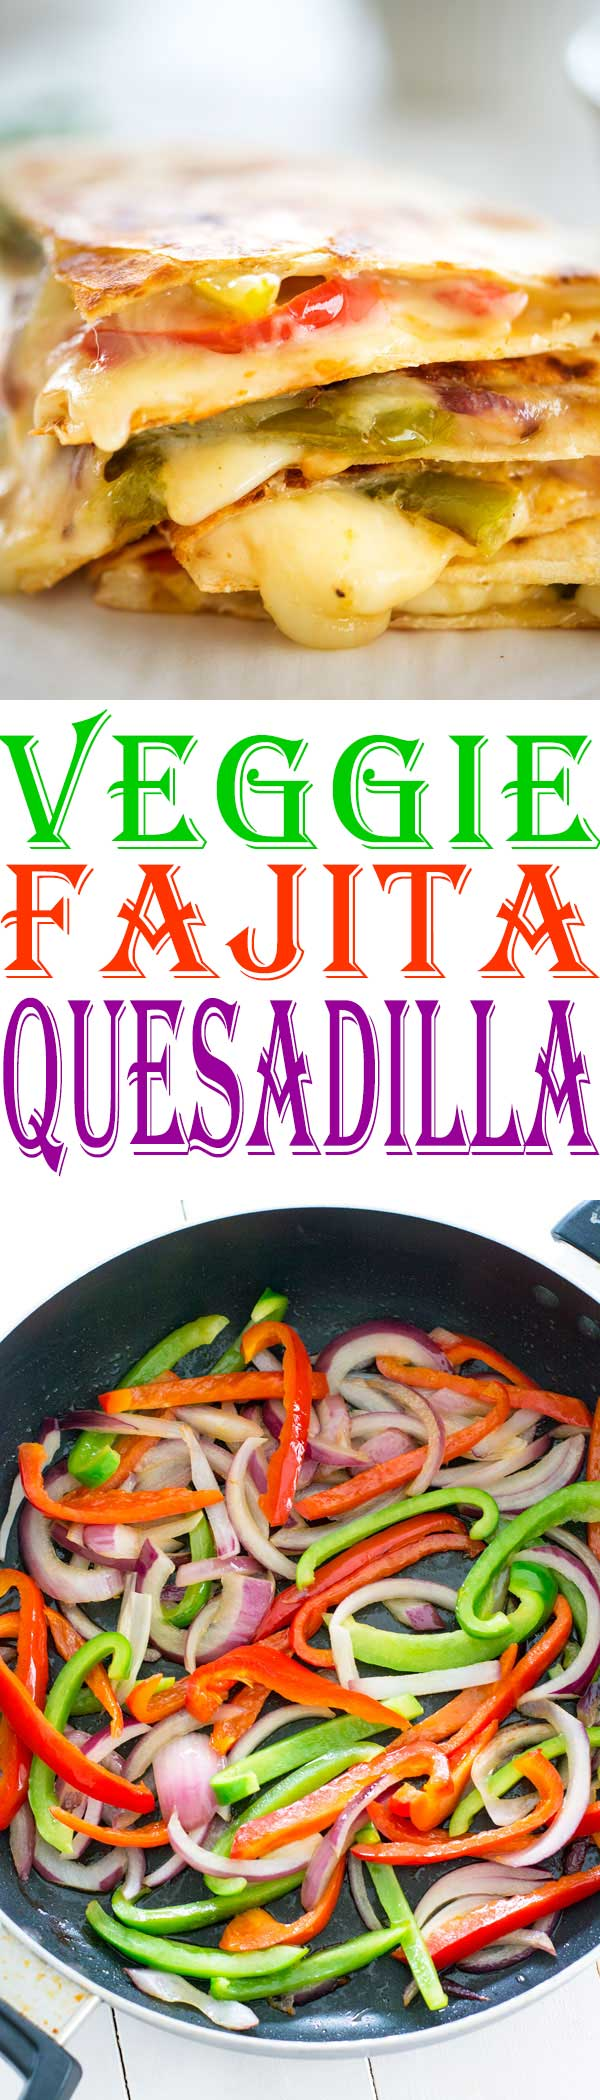 Mexican fajita vegetables are the star of this fajita veggie quesadilla. An easy vegetarian quesadilla recipe everyone will love!